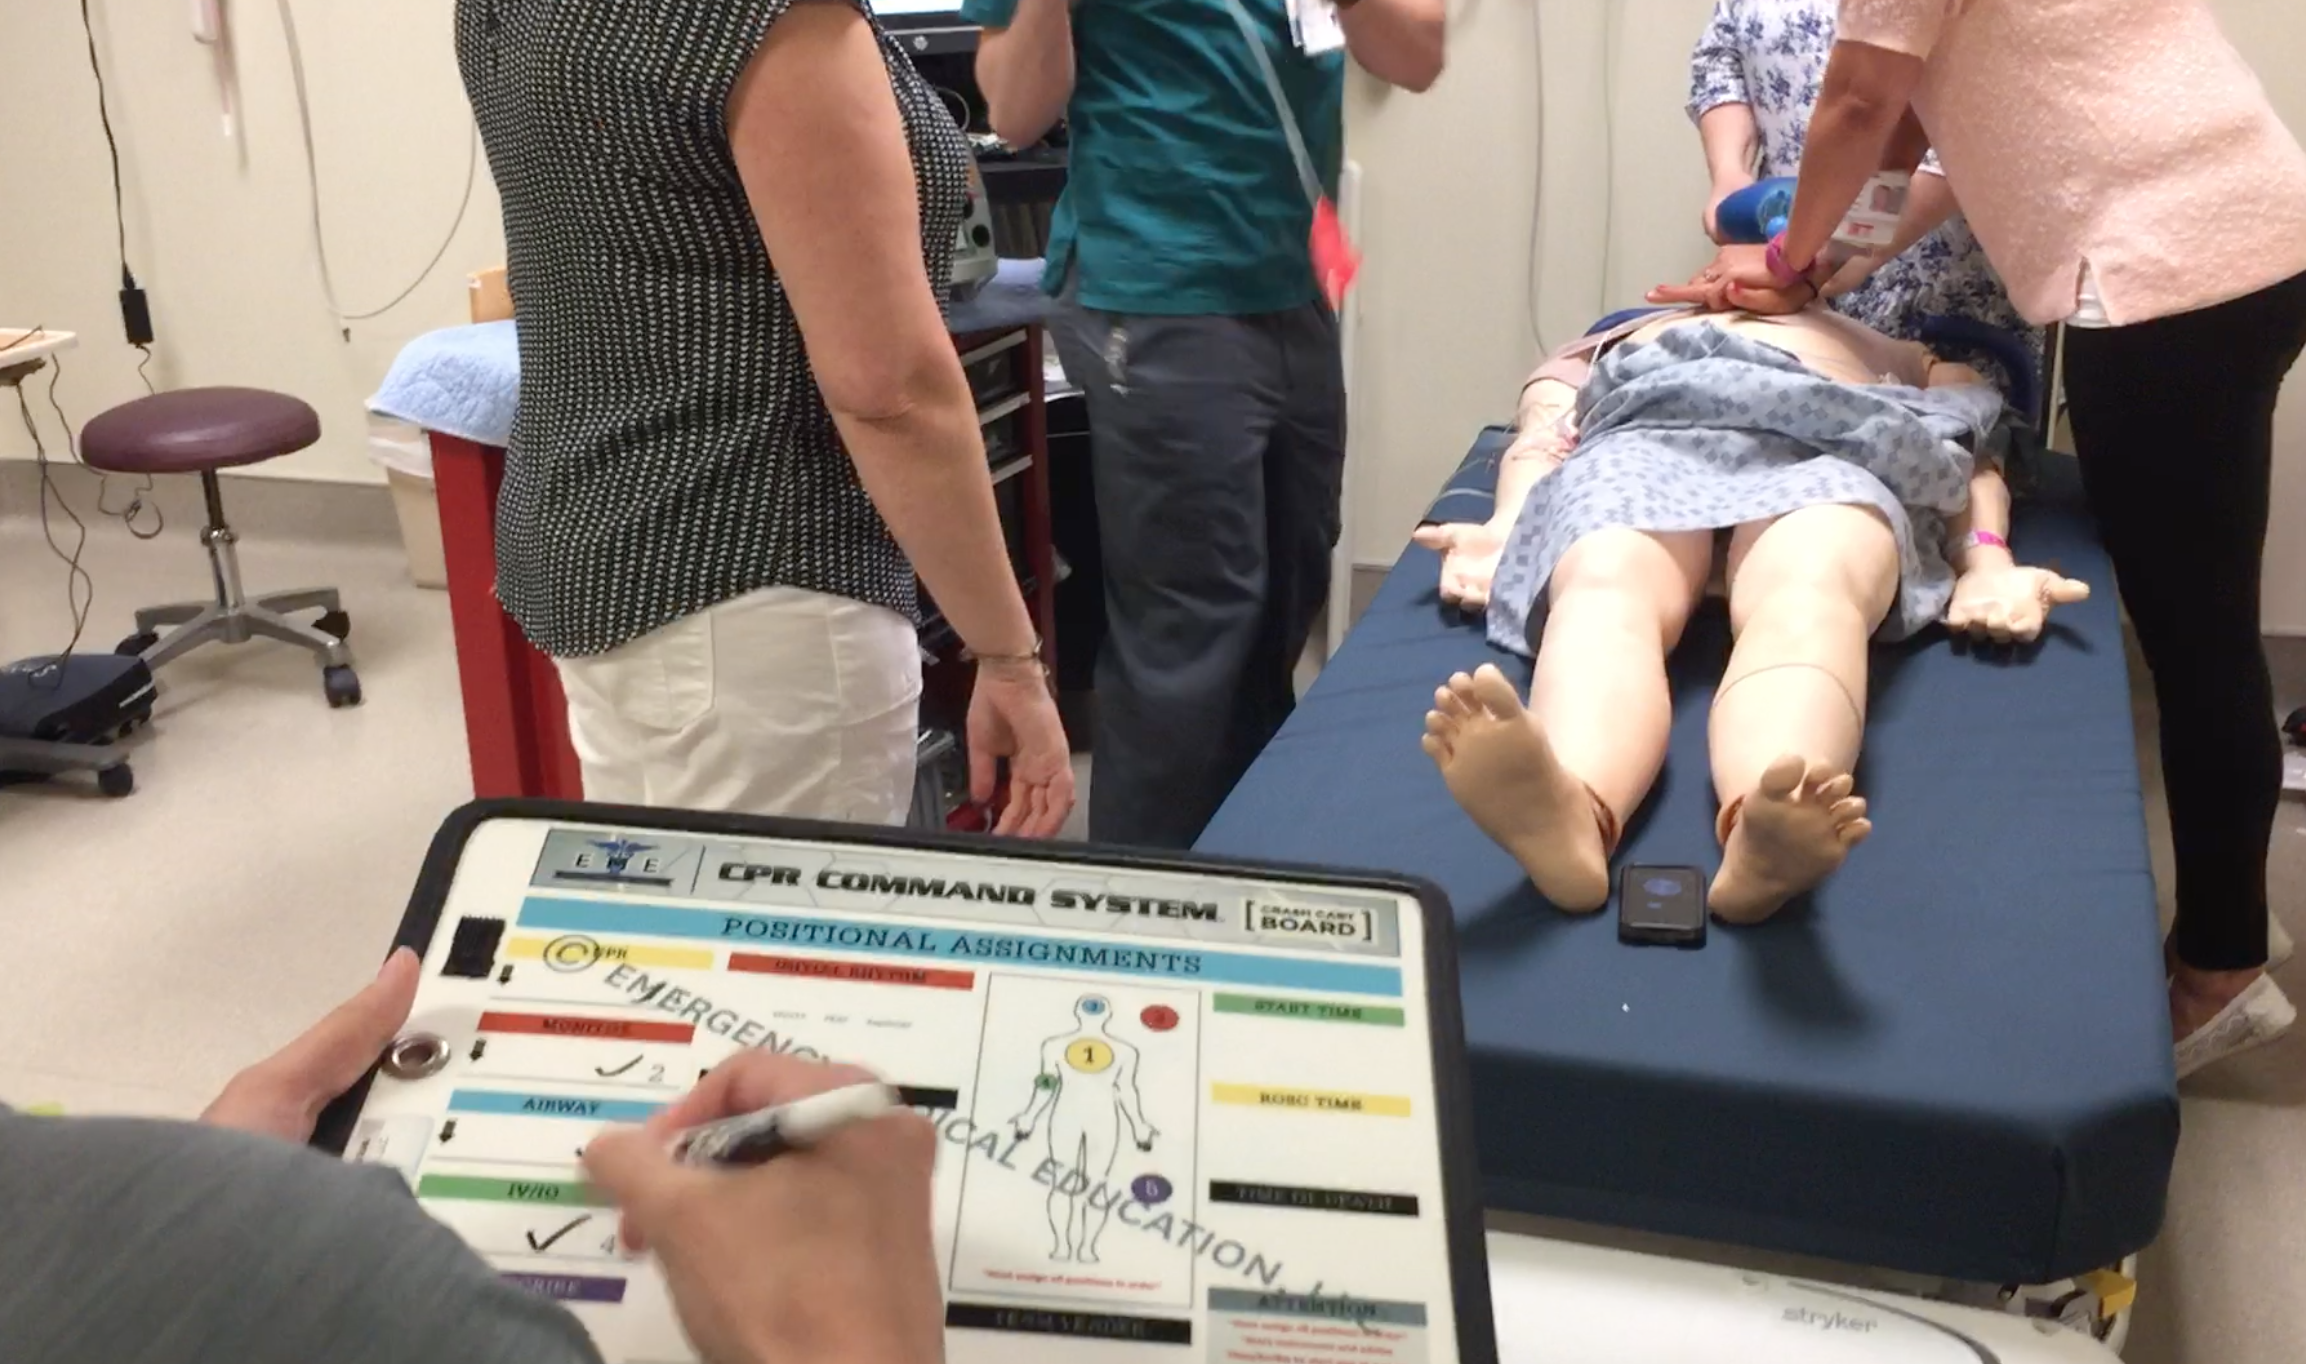 Training course using the CPR Command System (developed by Mark Sawdon).